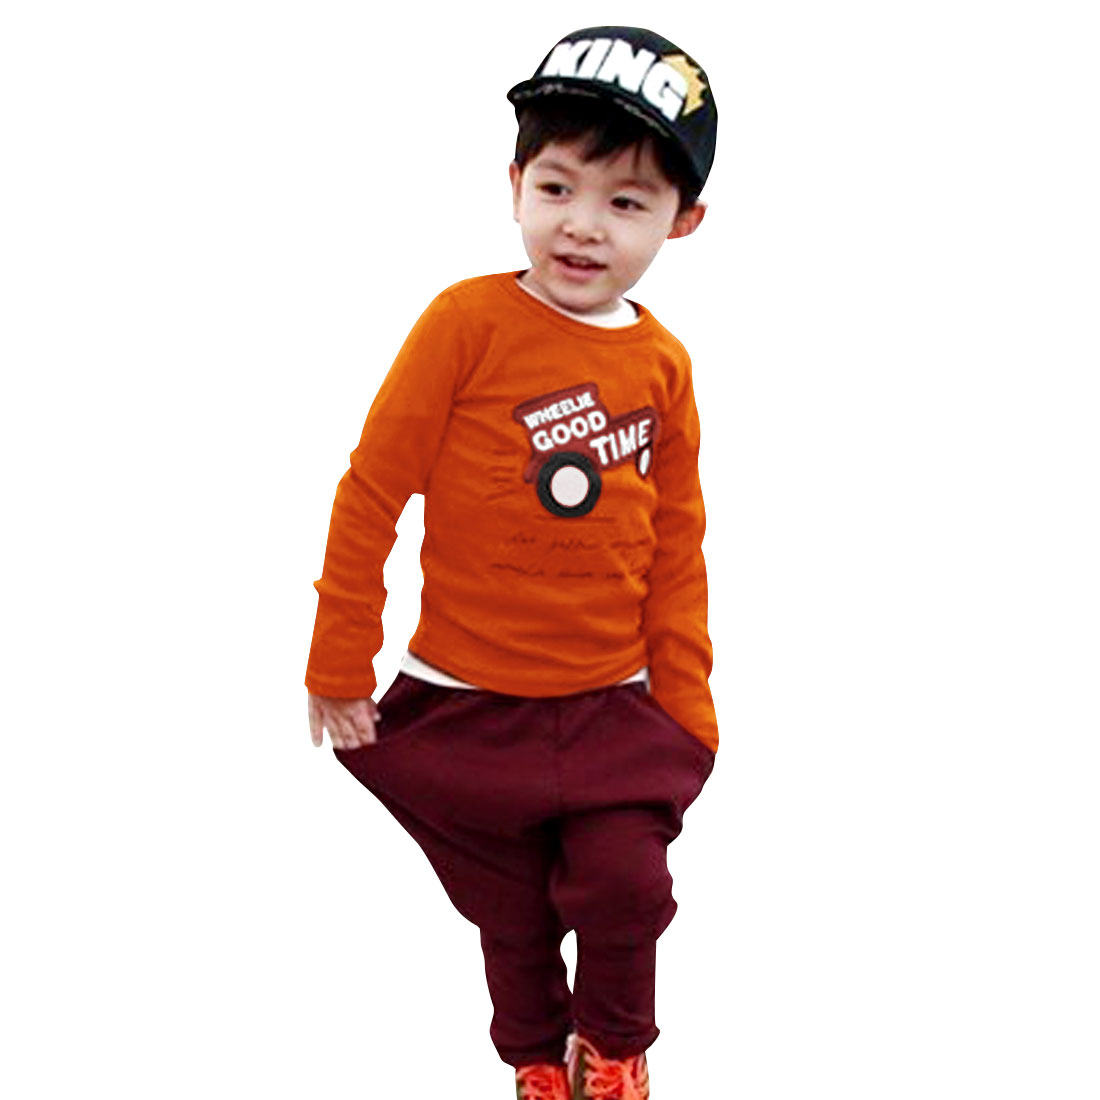 Dark Orange Color Round Neck Long Sleeve T-Shirt for Boys 4